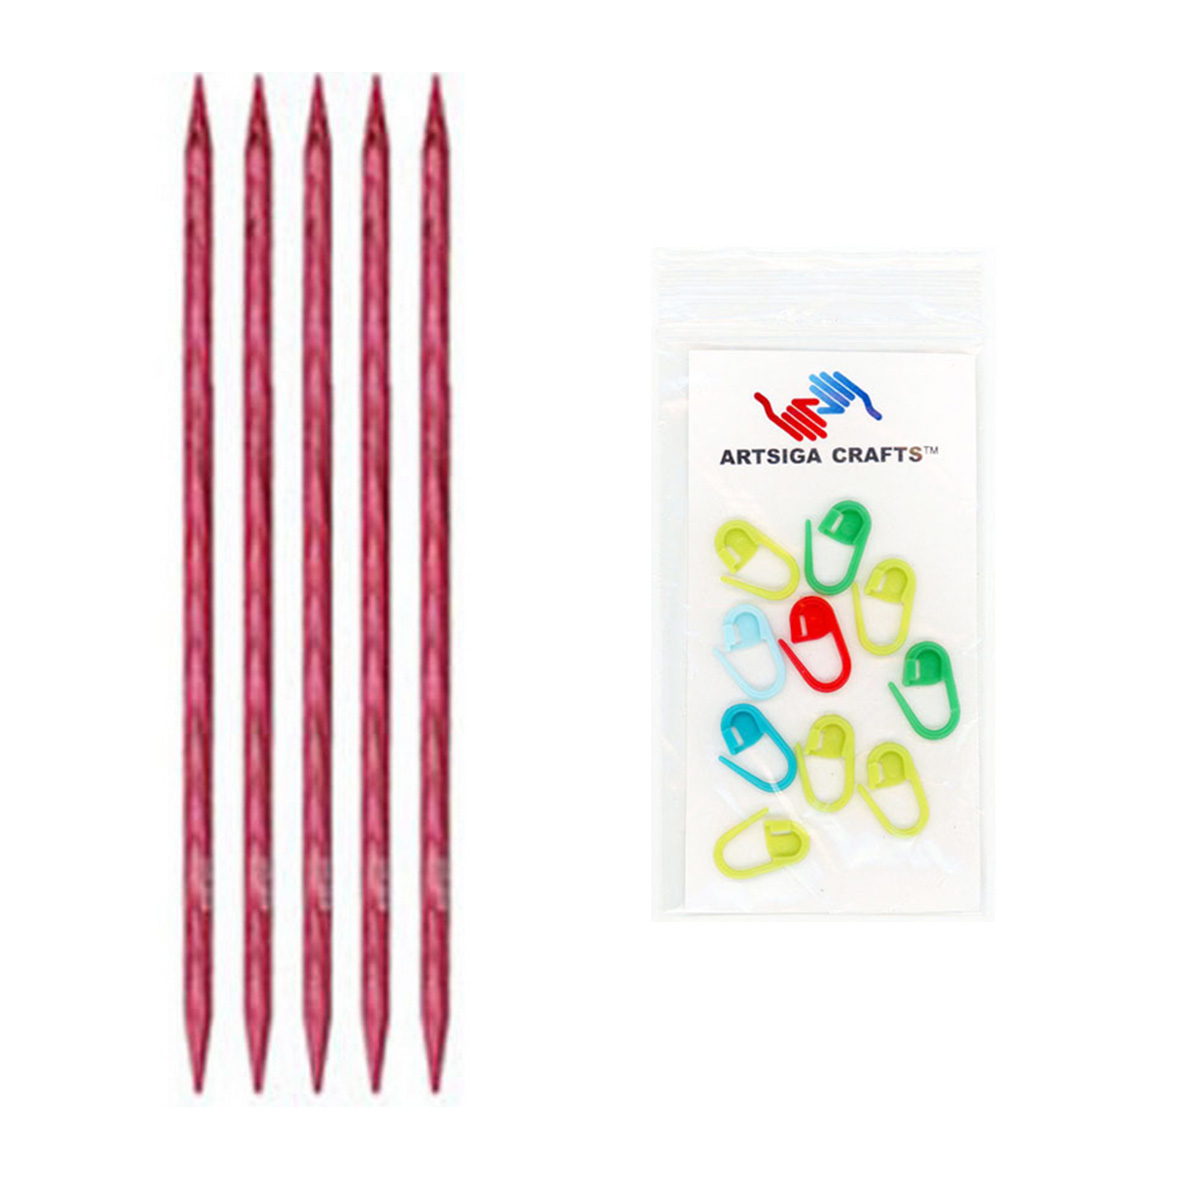 6 Knitters Pride 7//4.5mm Dreamz Double Pointed Needles